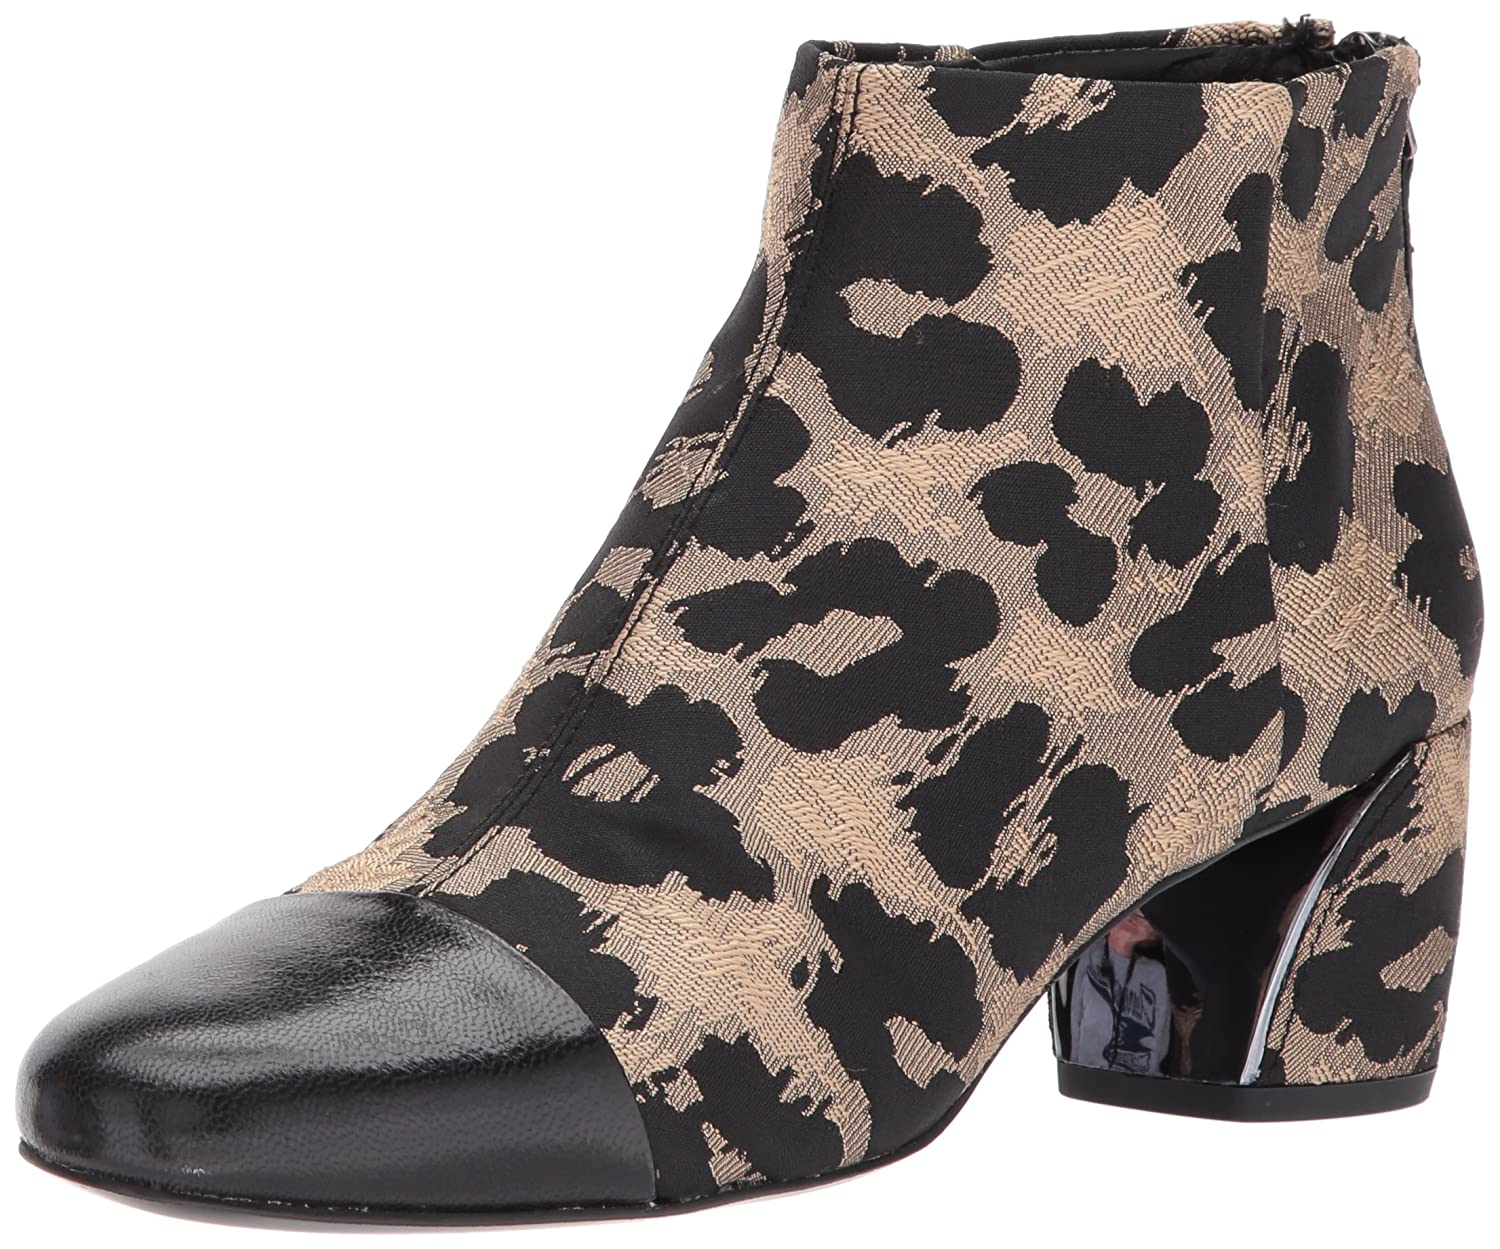 Nine West Women's Joannie Ankle Boot B01MUZYBEO 7 B(M) US|Natural Multi/Black